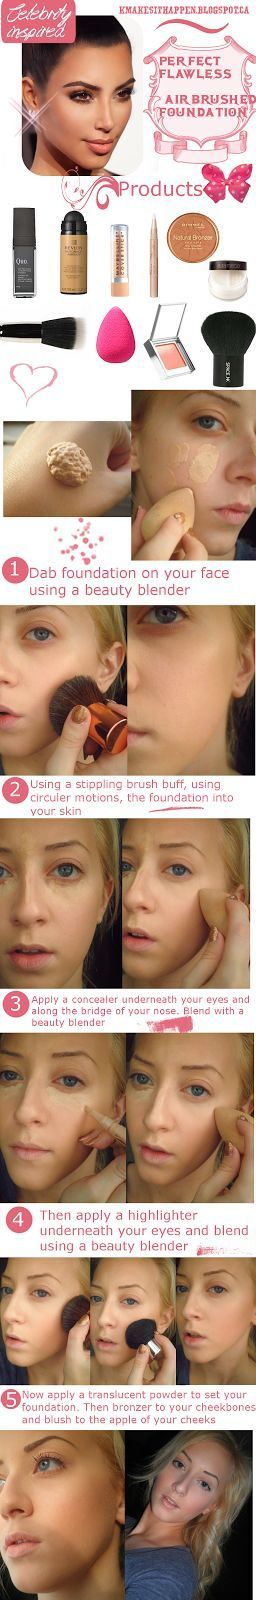 http://makeupit.com/m0KZF | This changed the way I contour!